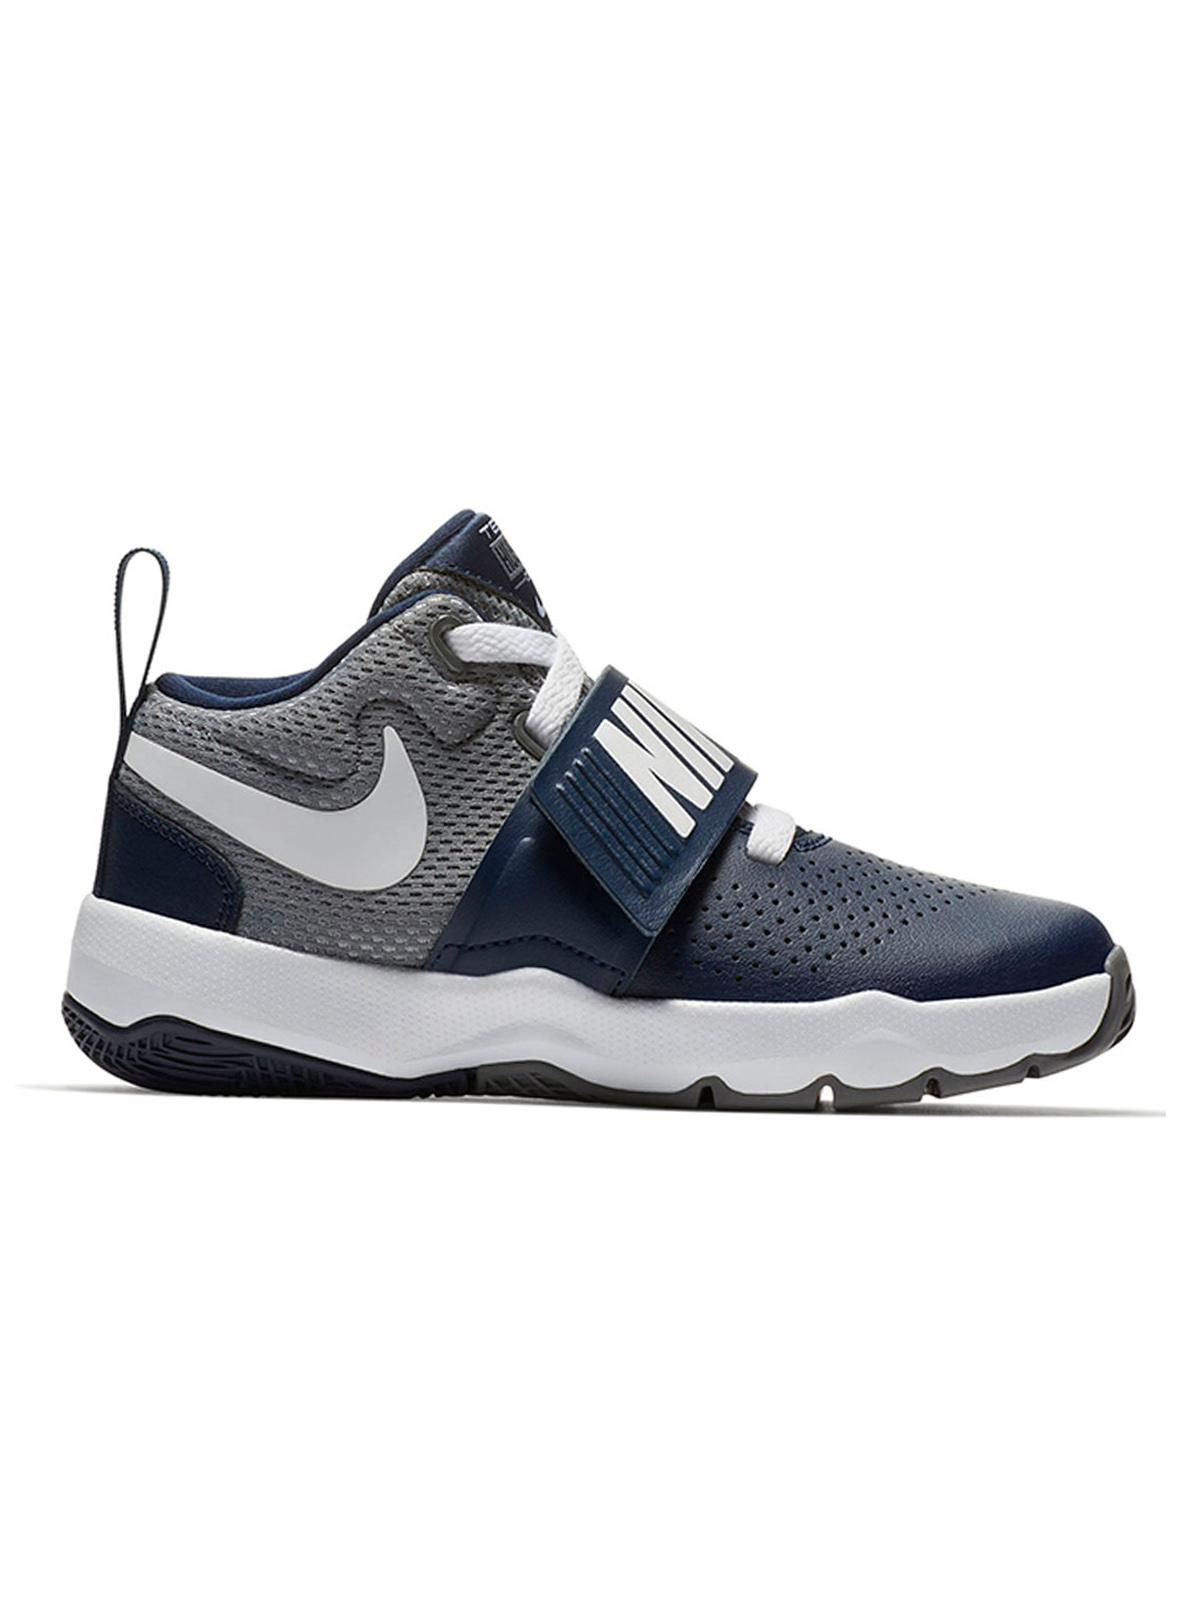 Nike Team Hustle D 8 Gs 881942 401